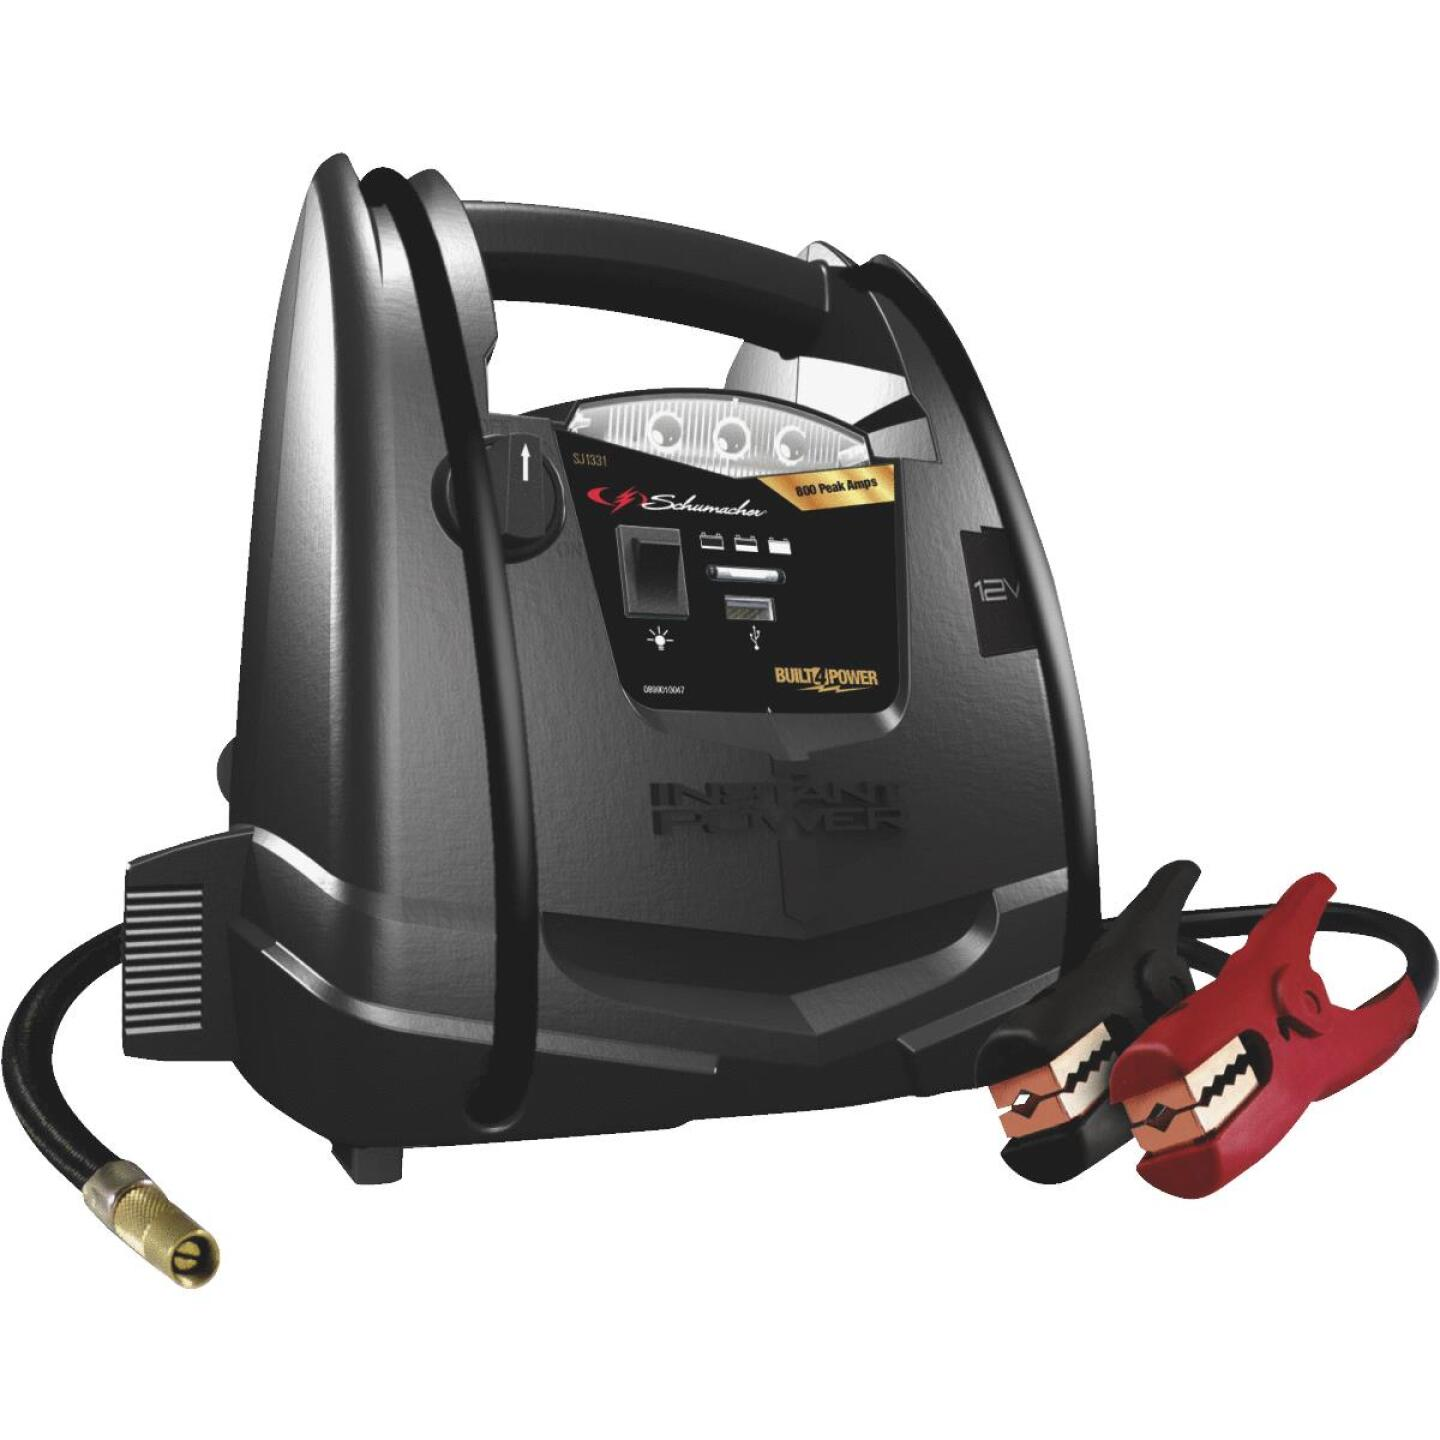 Schumacher 800A Jump Start System and Air Compressor Image 1